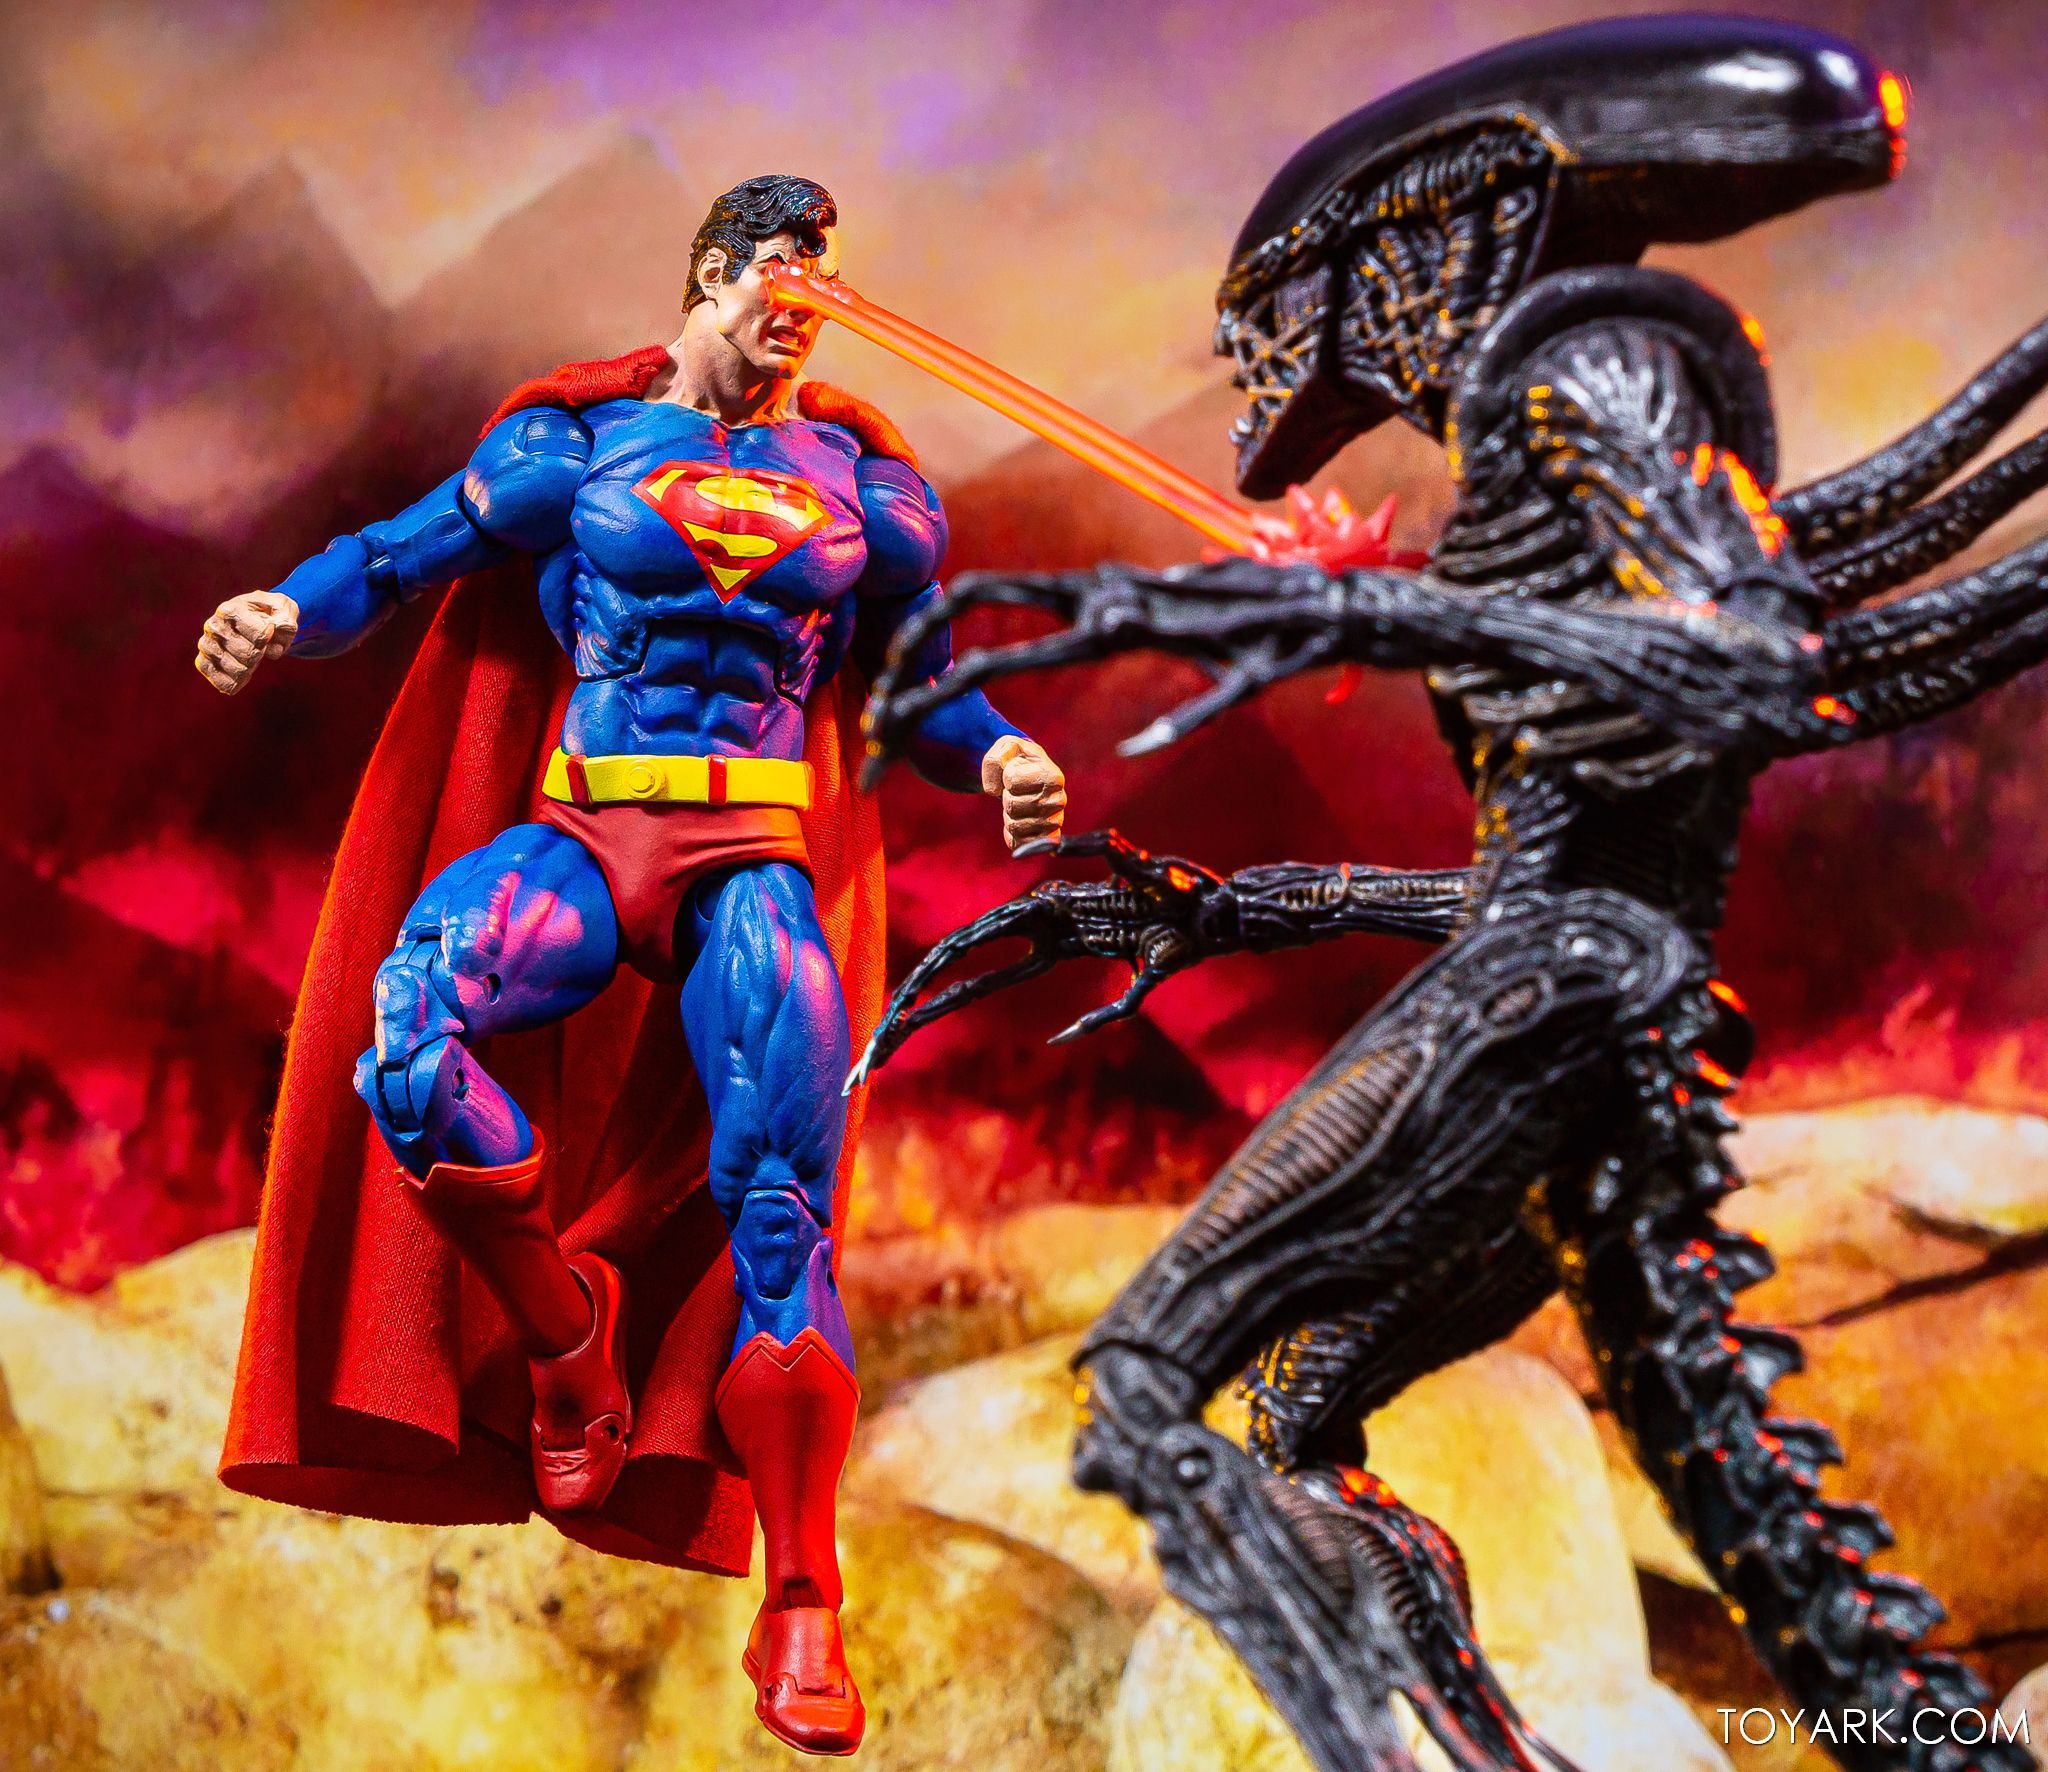 https://news.toyark.com/wp-content/uploads/sites/4/2019/09/Superman-vs-Alien-Set-050.jpg